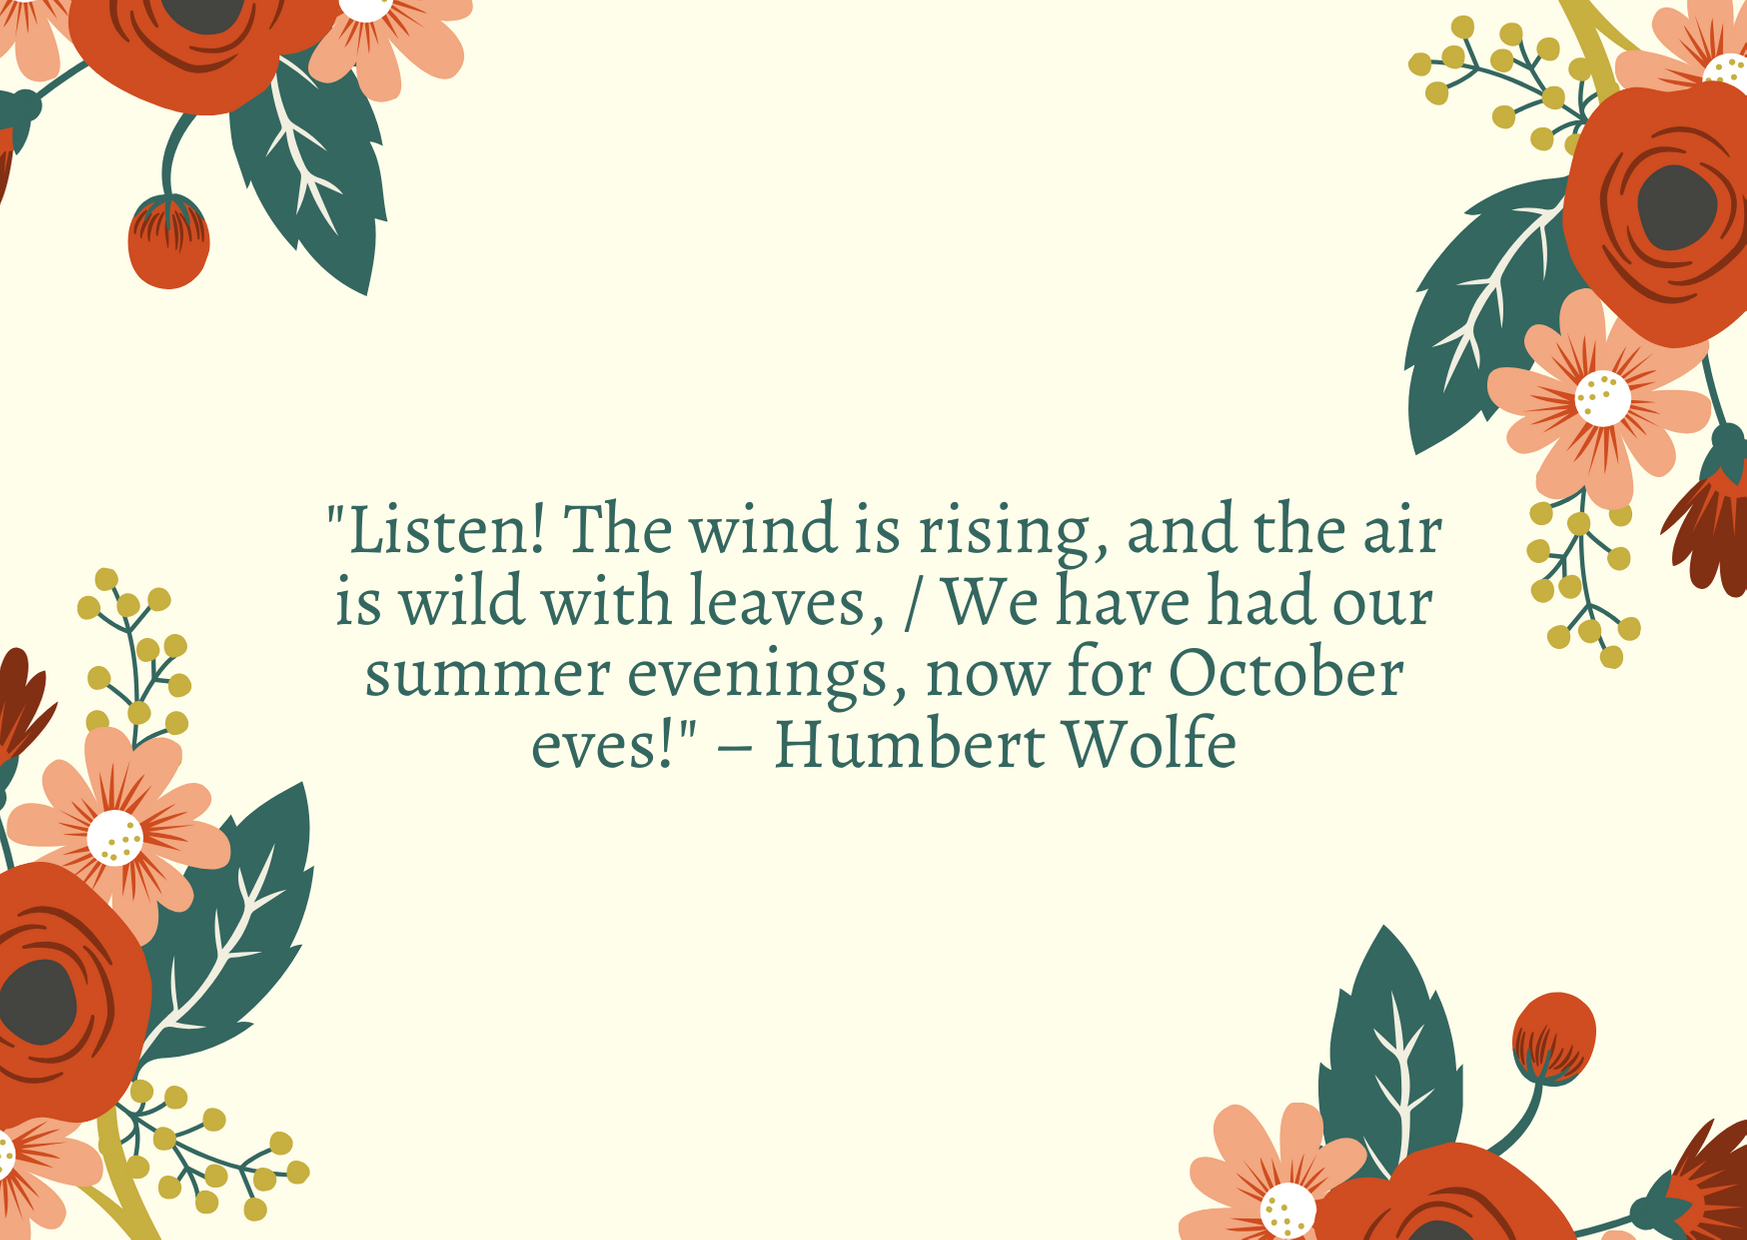 """Listen! The wind is rising, and the air is wild with leaves, / We have had our summer evenings, now for October eves!"" – Humbert Wolfe"